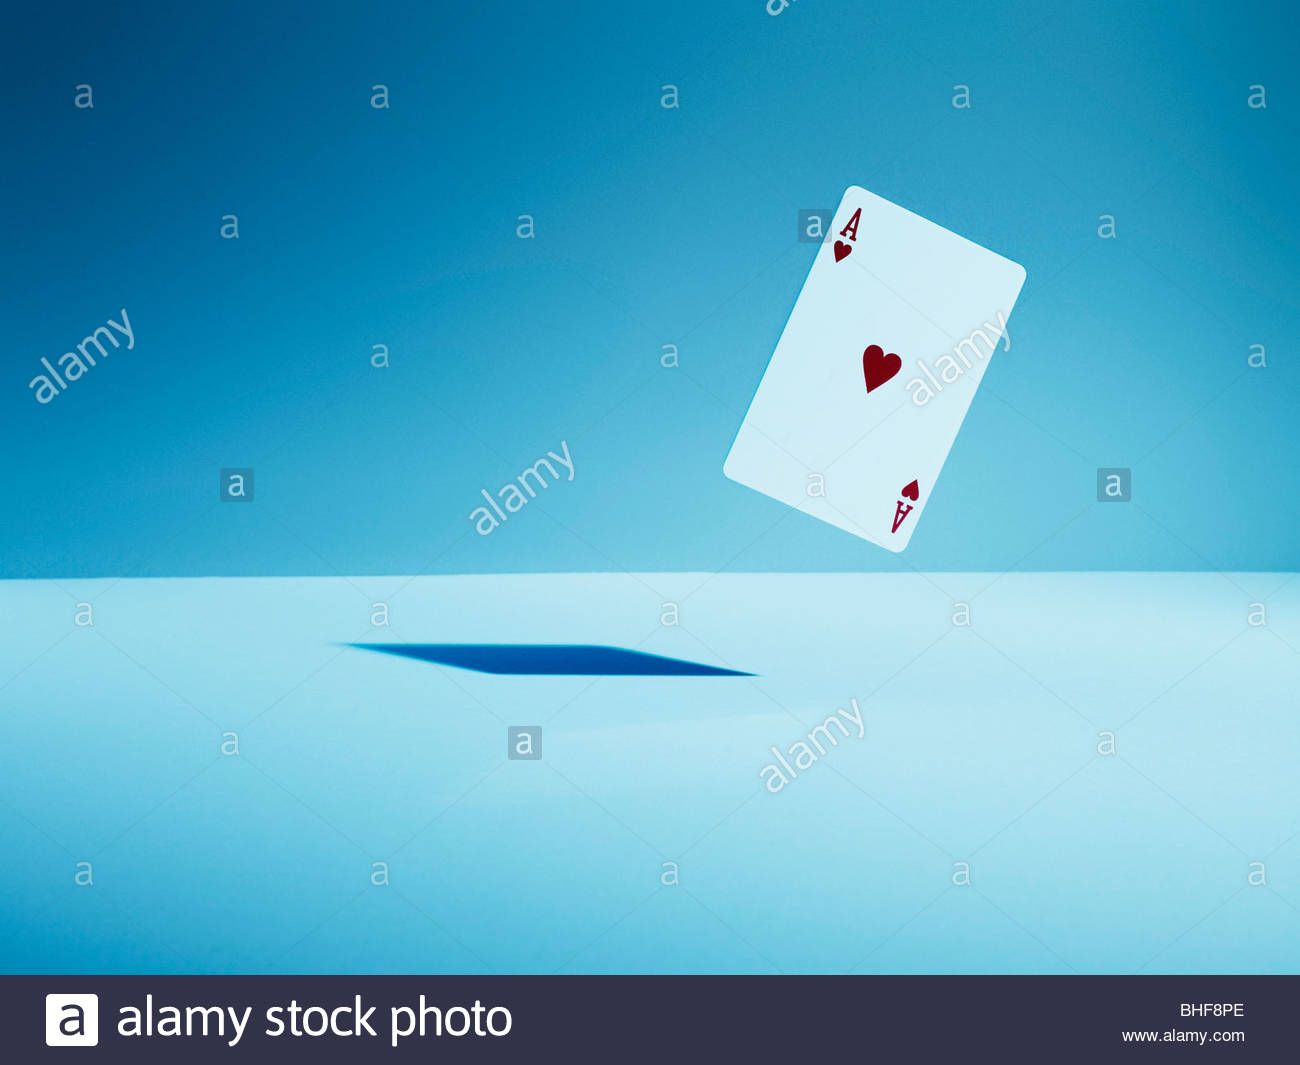 Ace of hearts playing card in mid-air - Stock Image